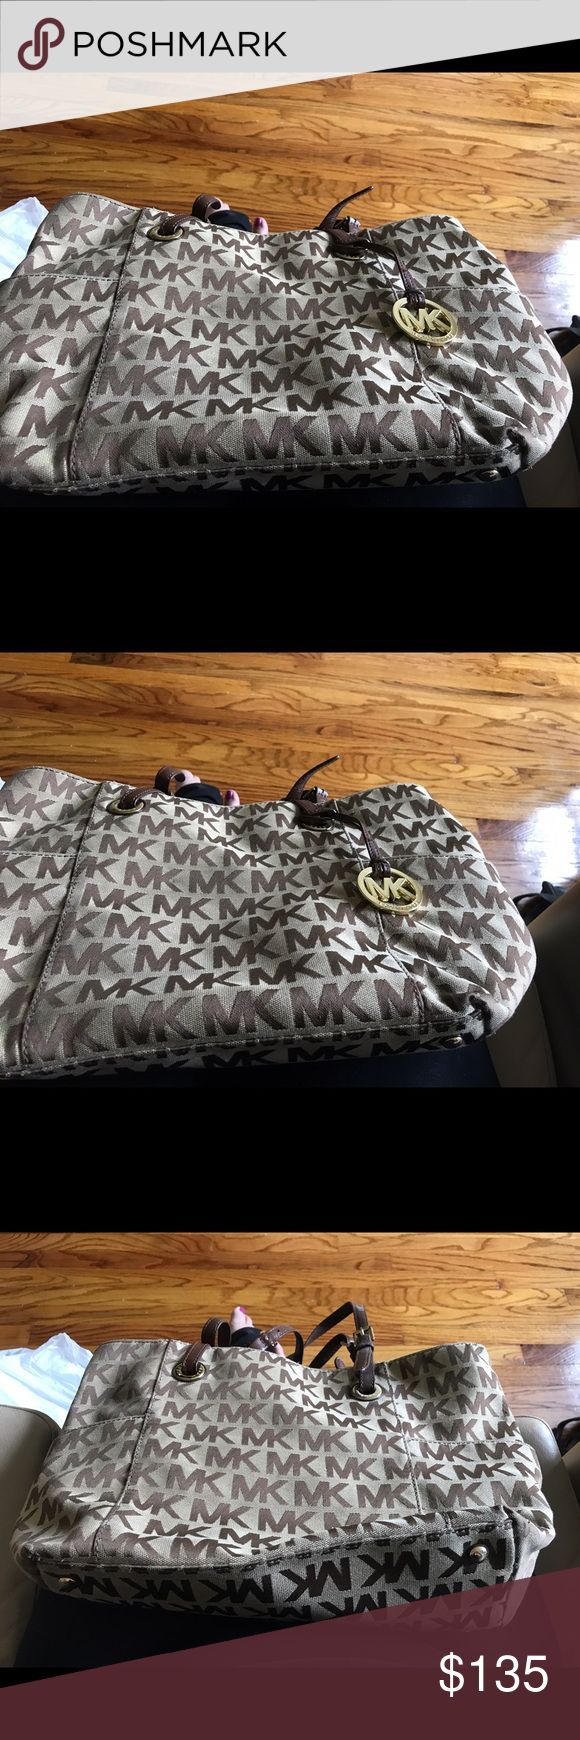 Michael Kors jet set purse Michael kors jet set tote lightly worn Michael Kors Bags Totes